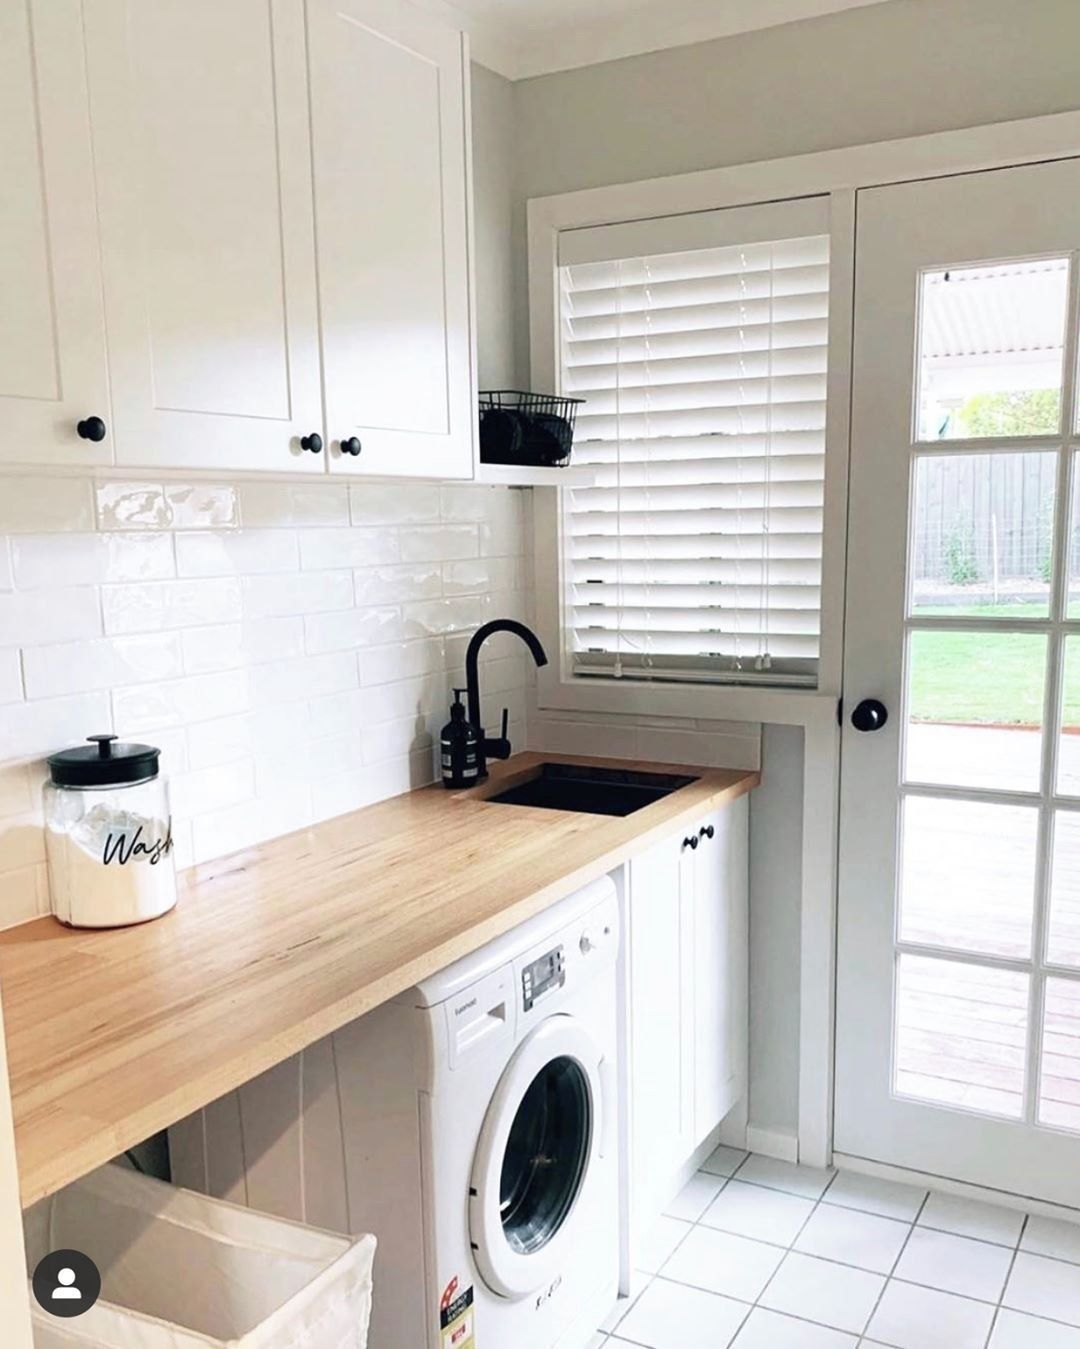 kaboodle kitchen on instagram flashback friday to when ourgisbornehome completed this on kaboodle kitchen storage id=30000